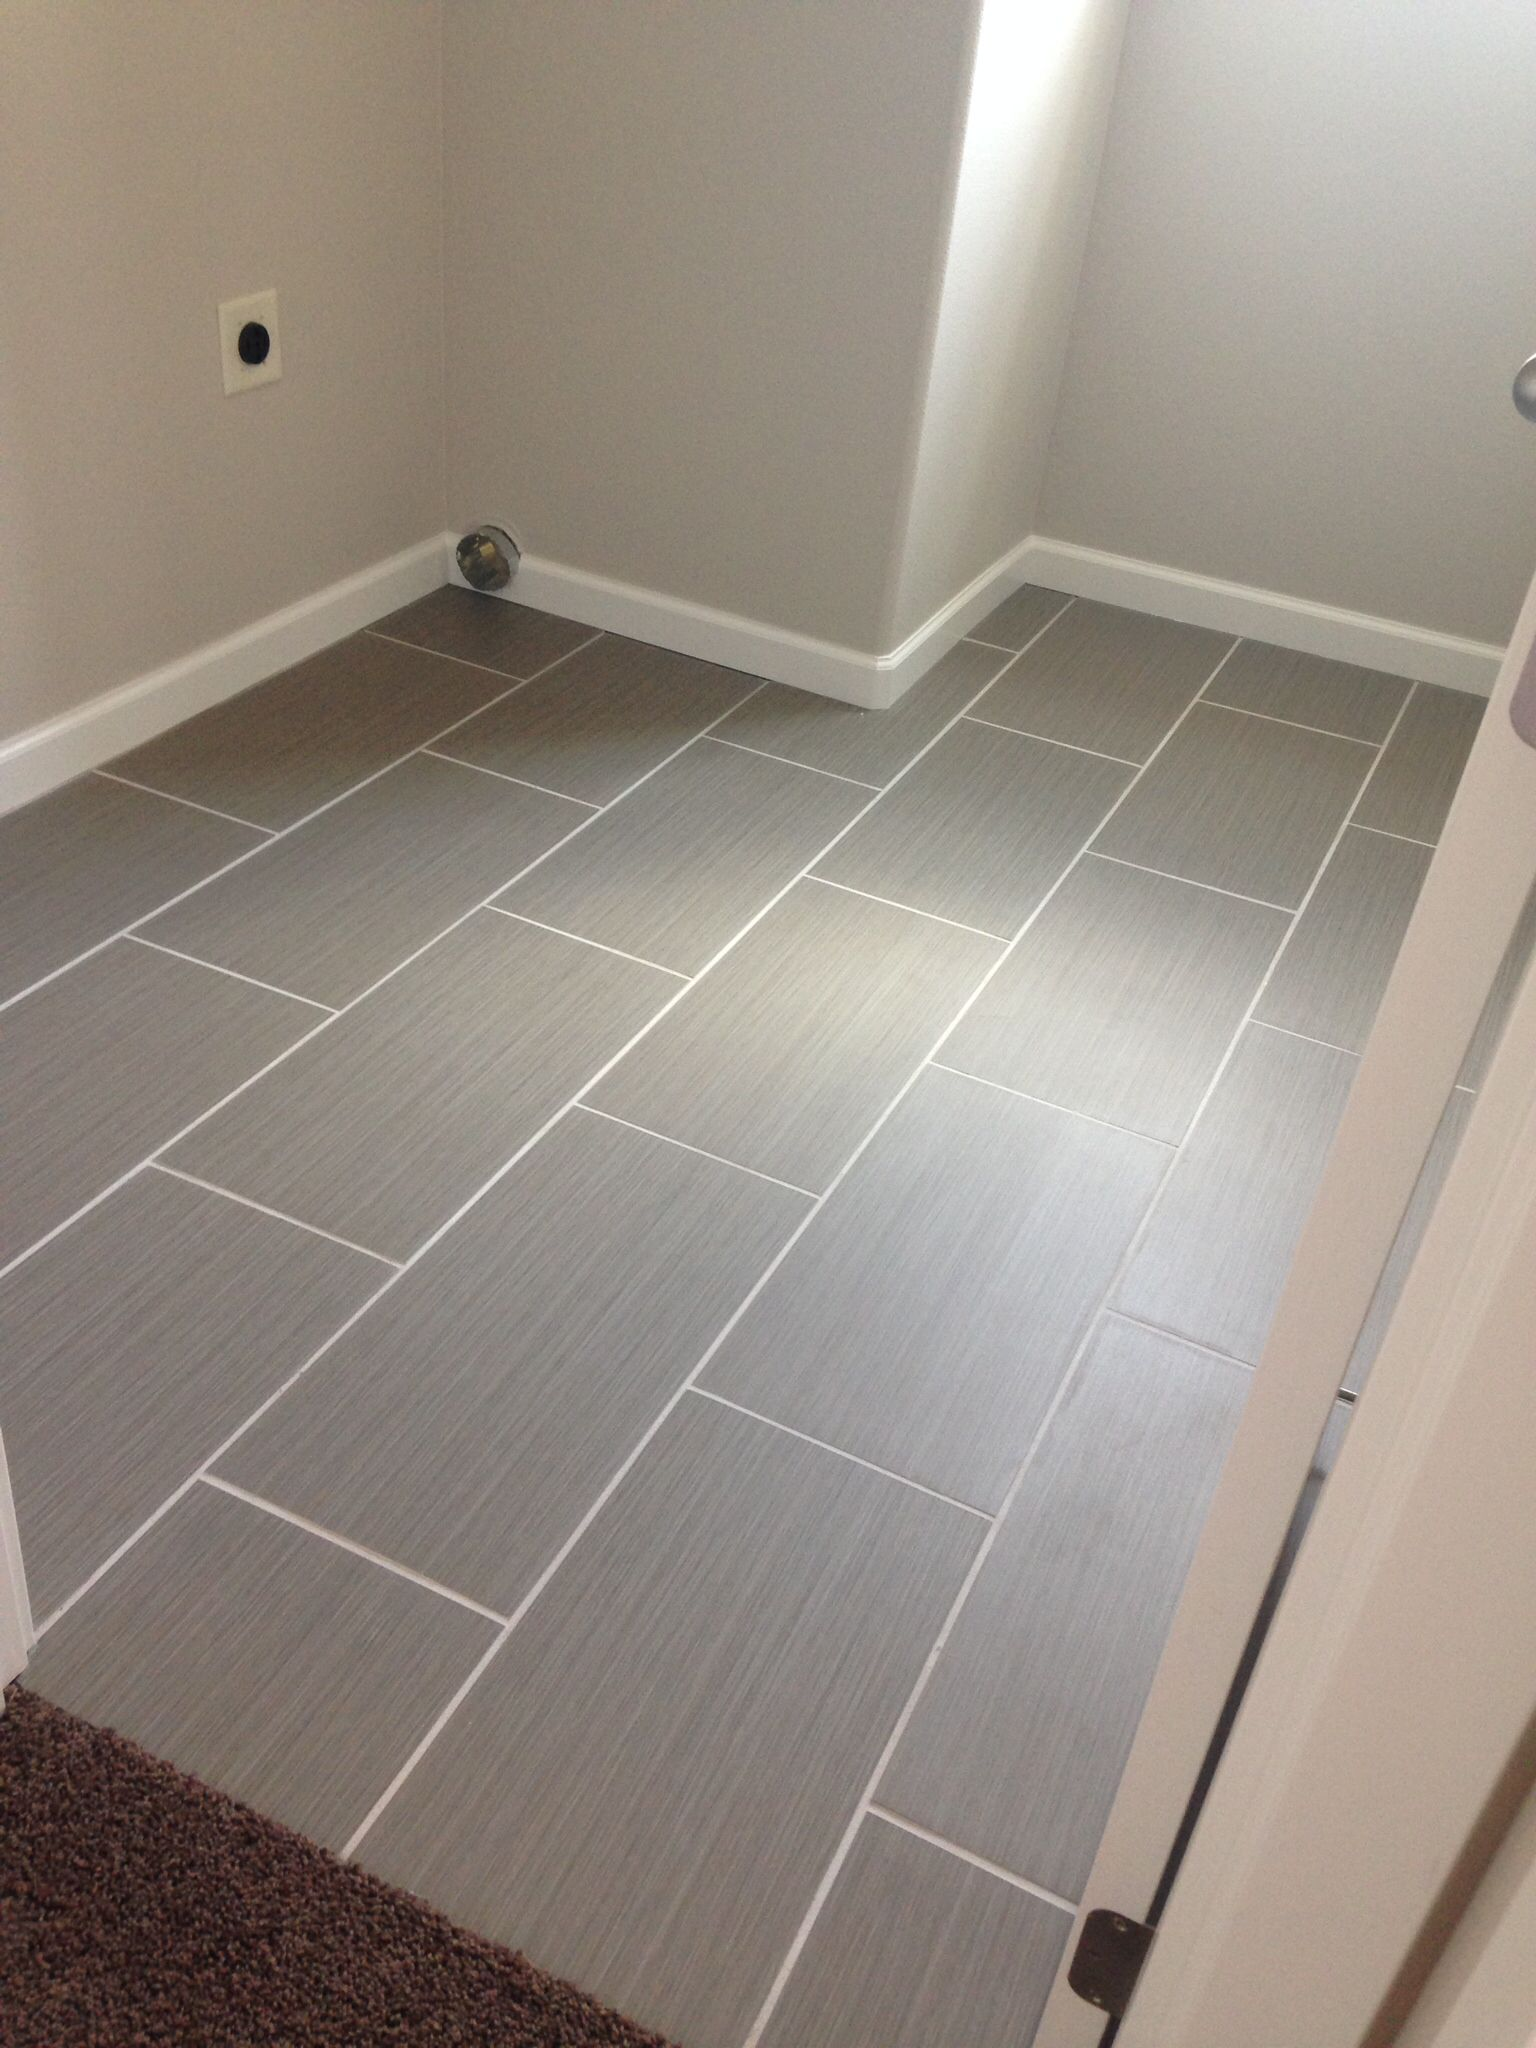 Gray Tile From Costco 721343 Neo Tile 1 39 2 39 Porcelain Tile